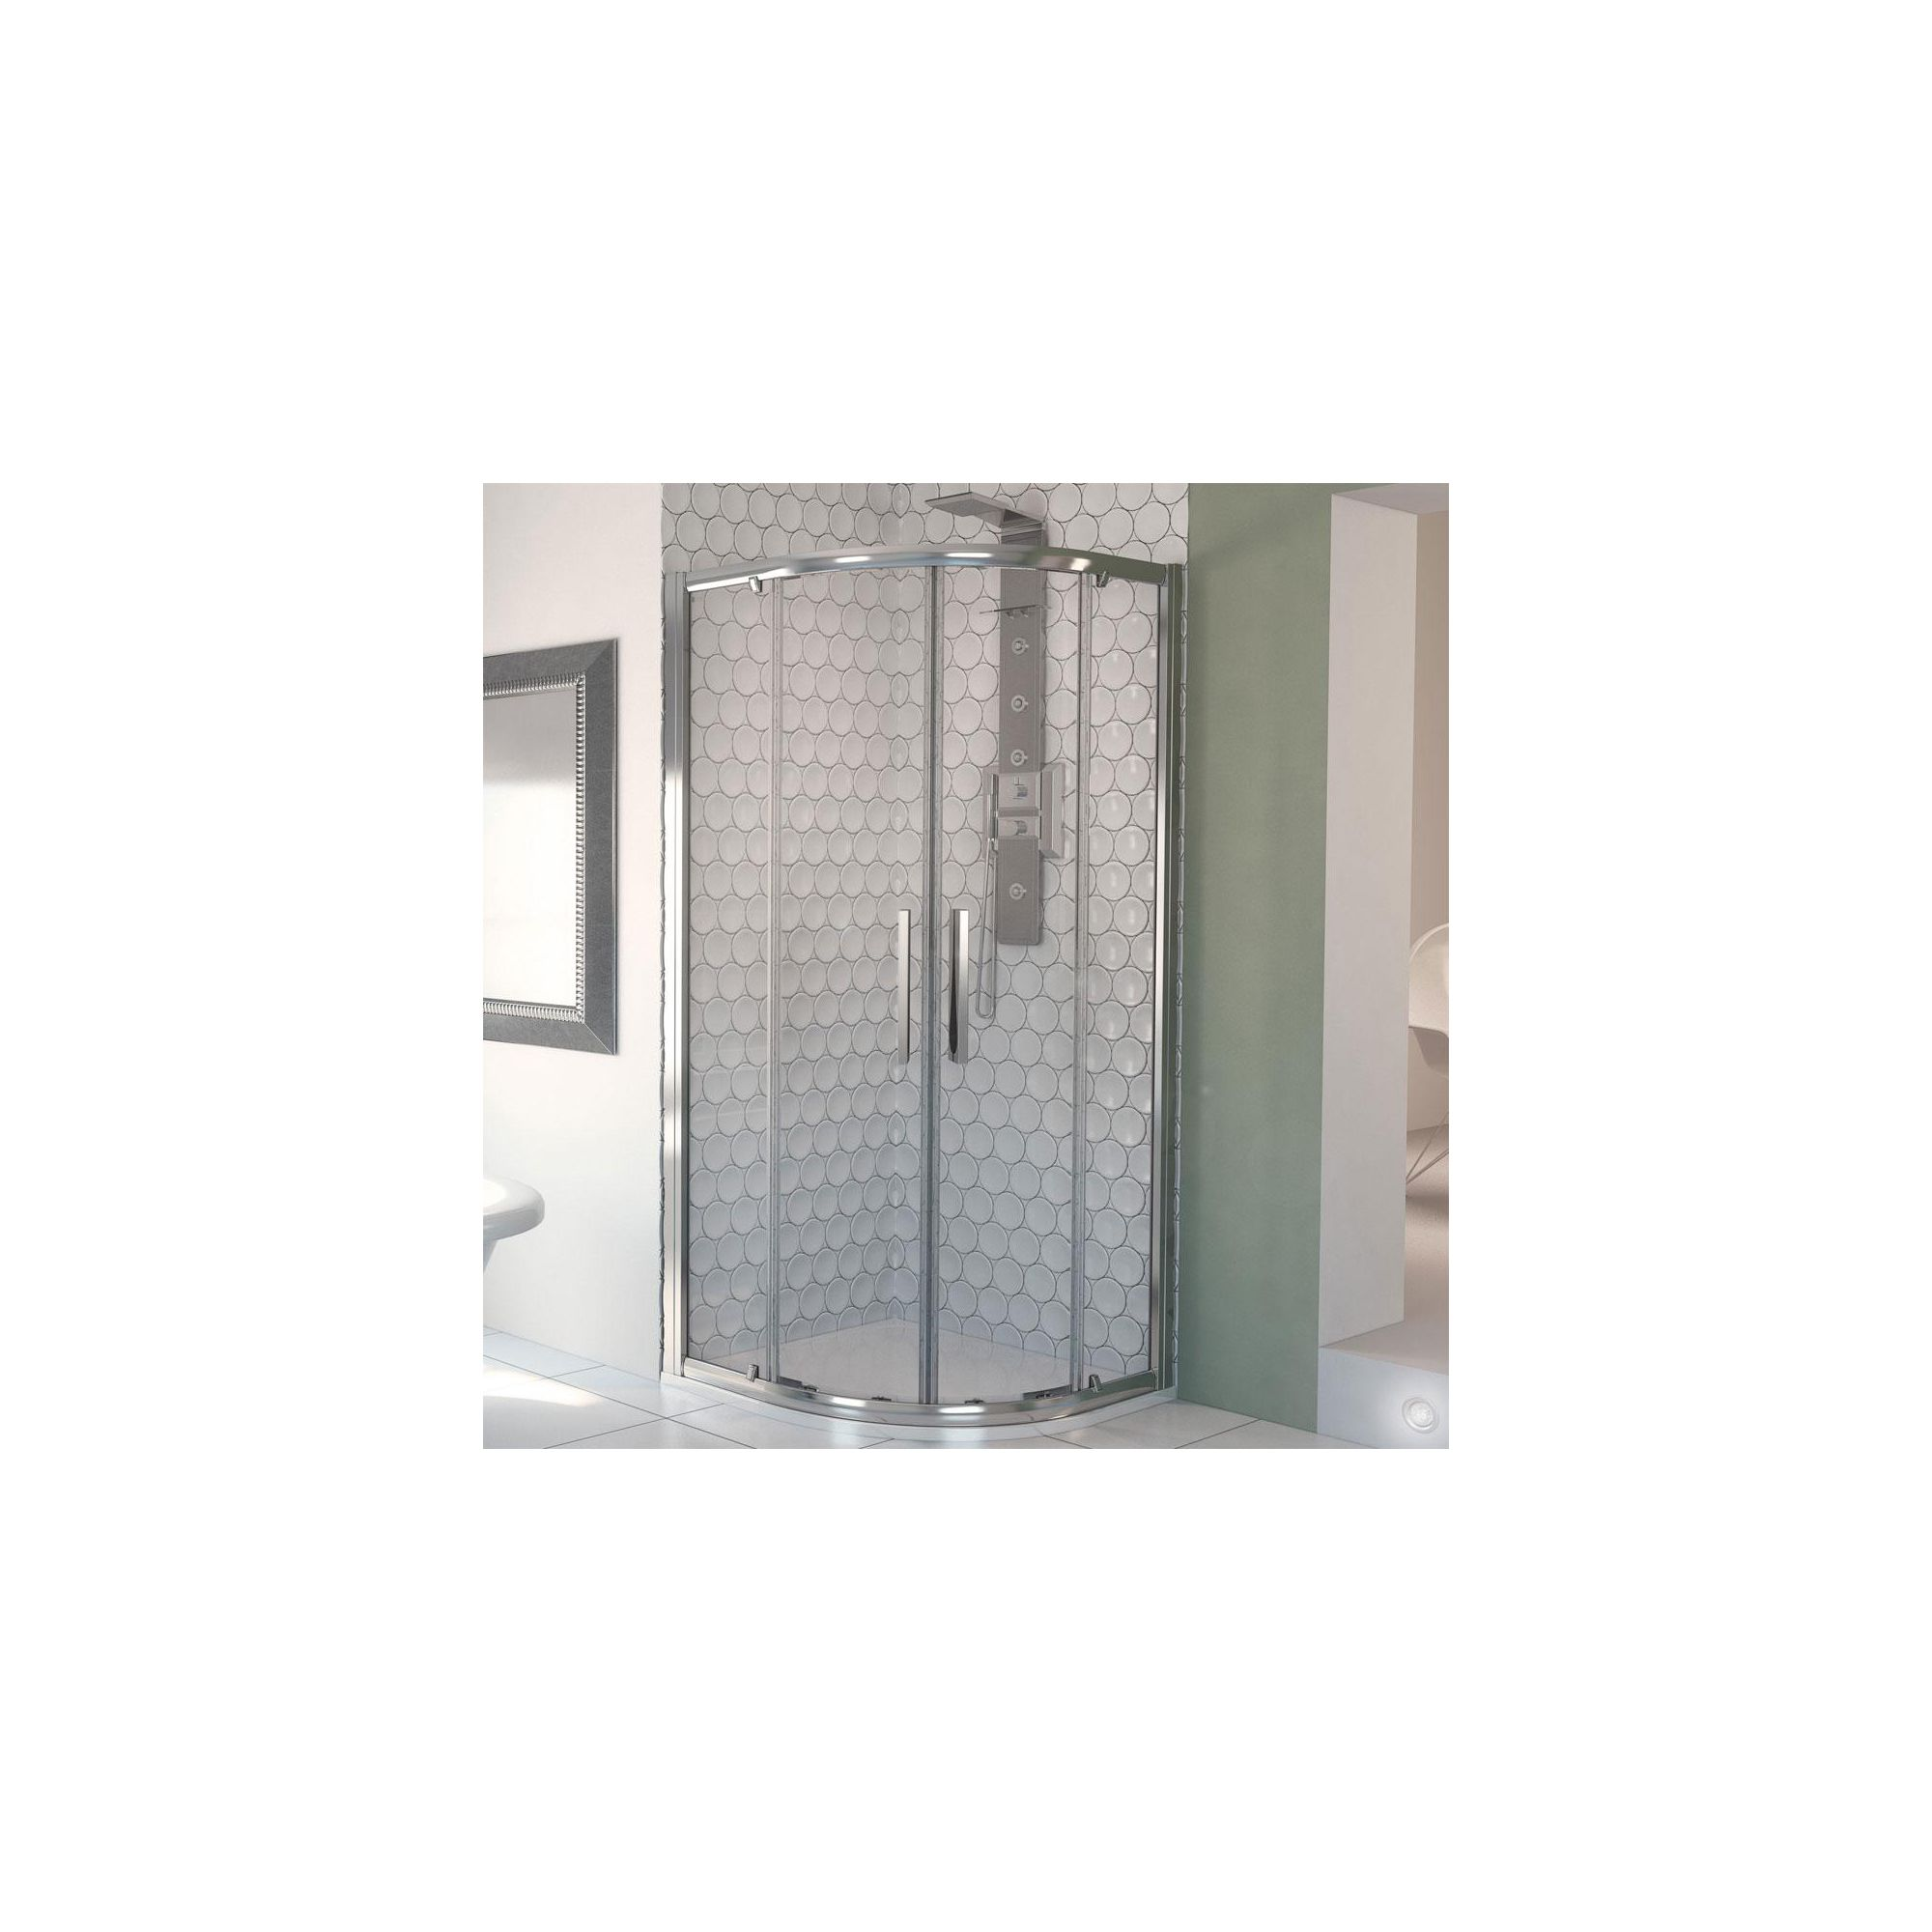 Aqualux AQUA8 Glide Quadrant Shower Door, 900mm x 900mm, Polished Silver Frame, 8mm Glass at Tesco Direct